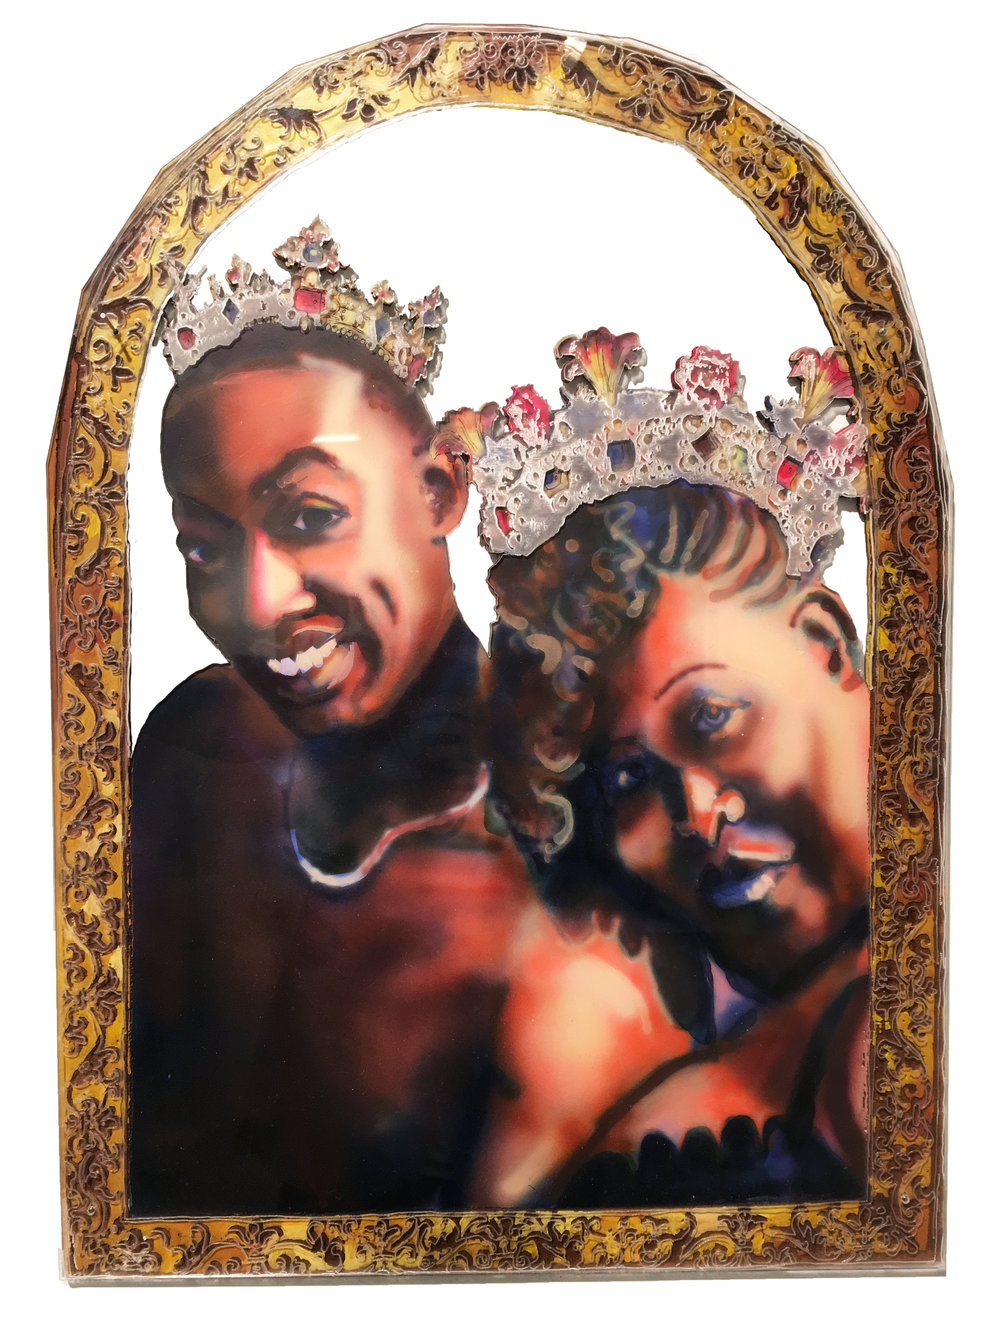 King and Queen, 2018, Acrylic on Panel